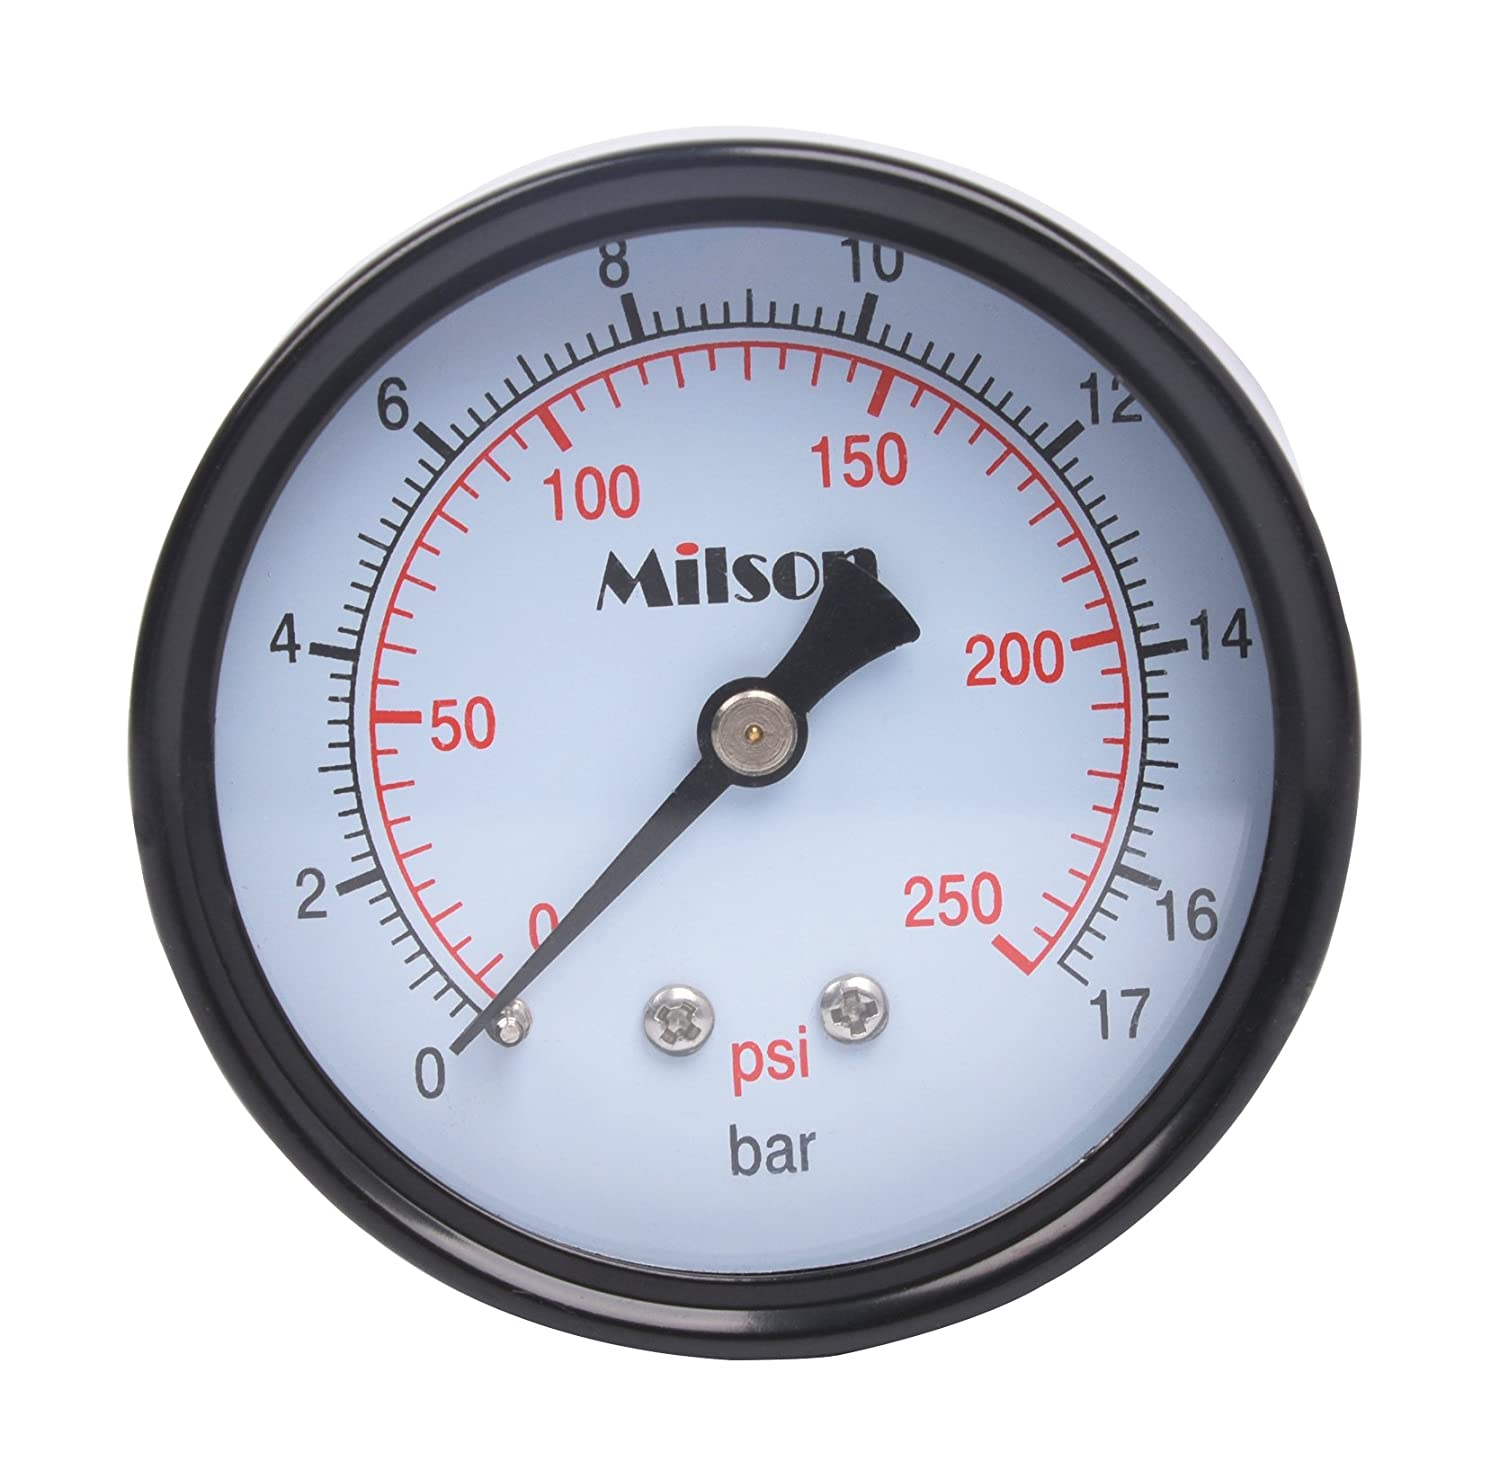 Milson Pressure Gauge 2.5 Black Steel Case Back Mount 1 4NPT 0 250 Psi Bar Accuracy 2.0 Brass Internal Multiple Function